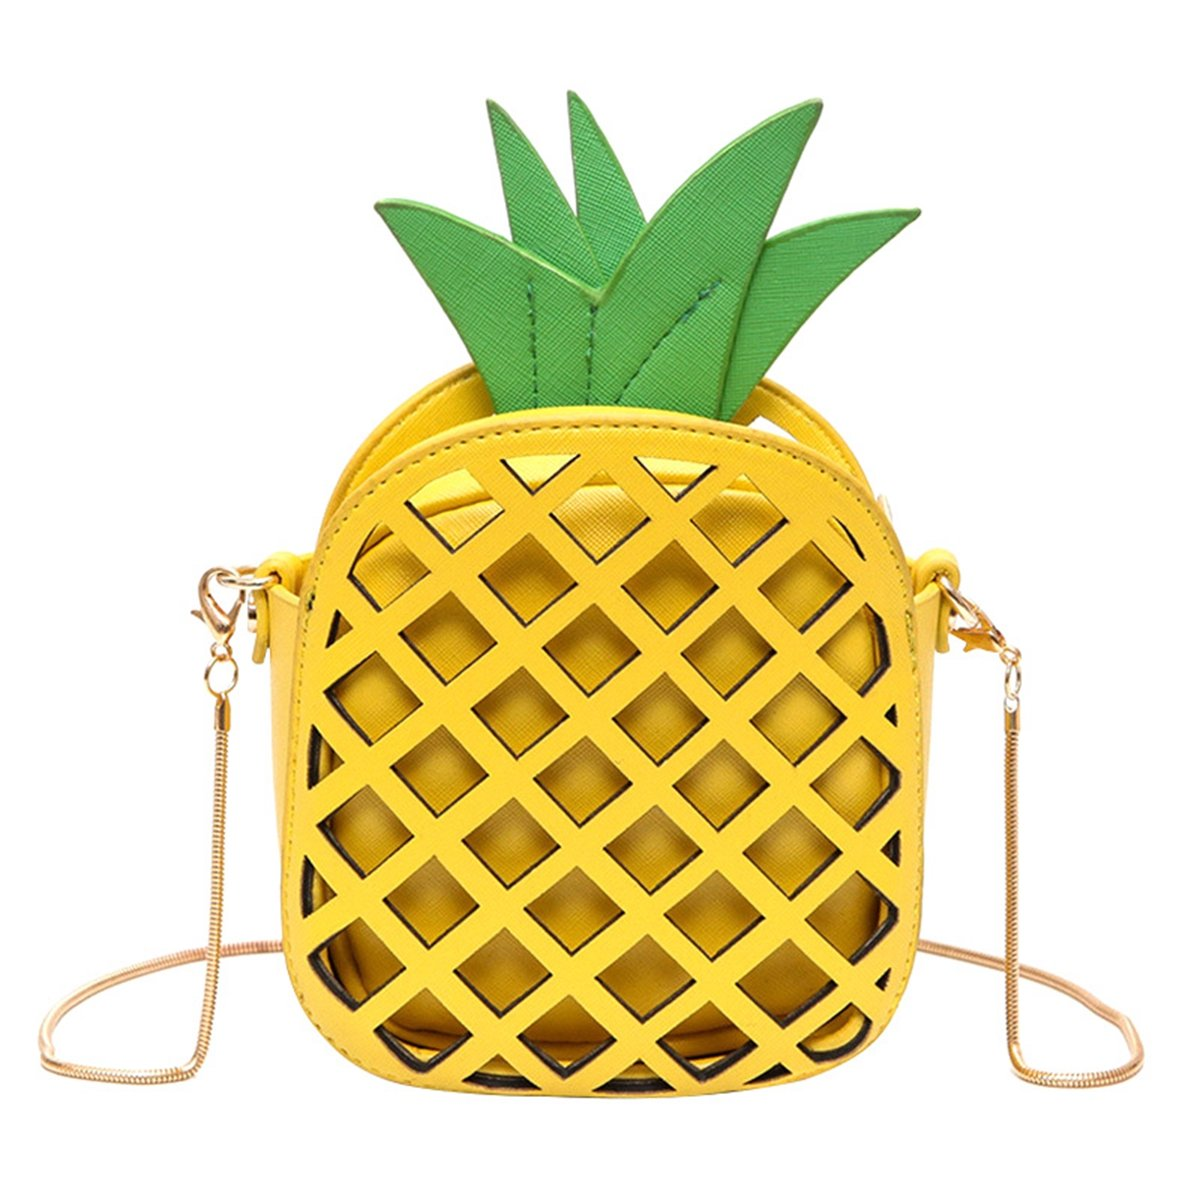 Kukoo Girl Leather Cross Body Bag Pineapple Shaped Creative Single Shoulder Bag Fashion Bag